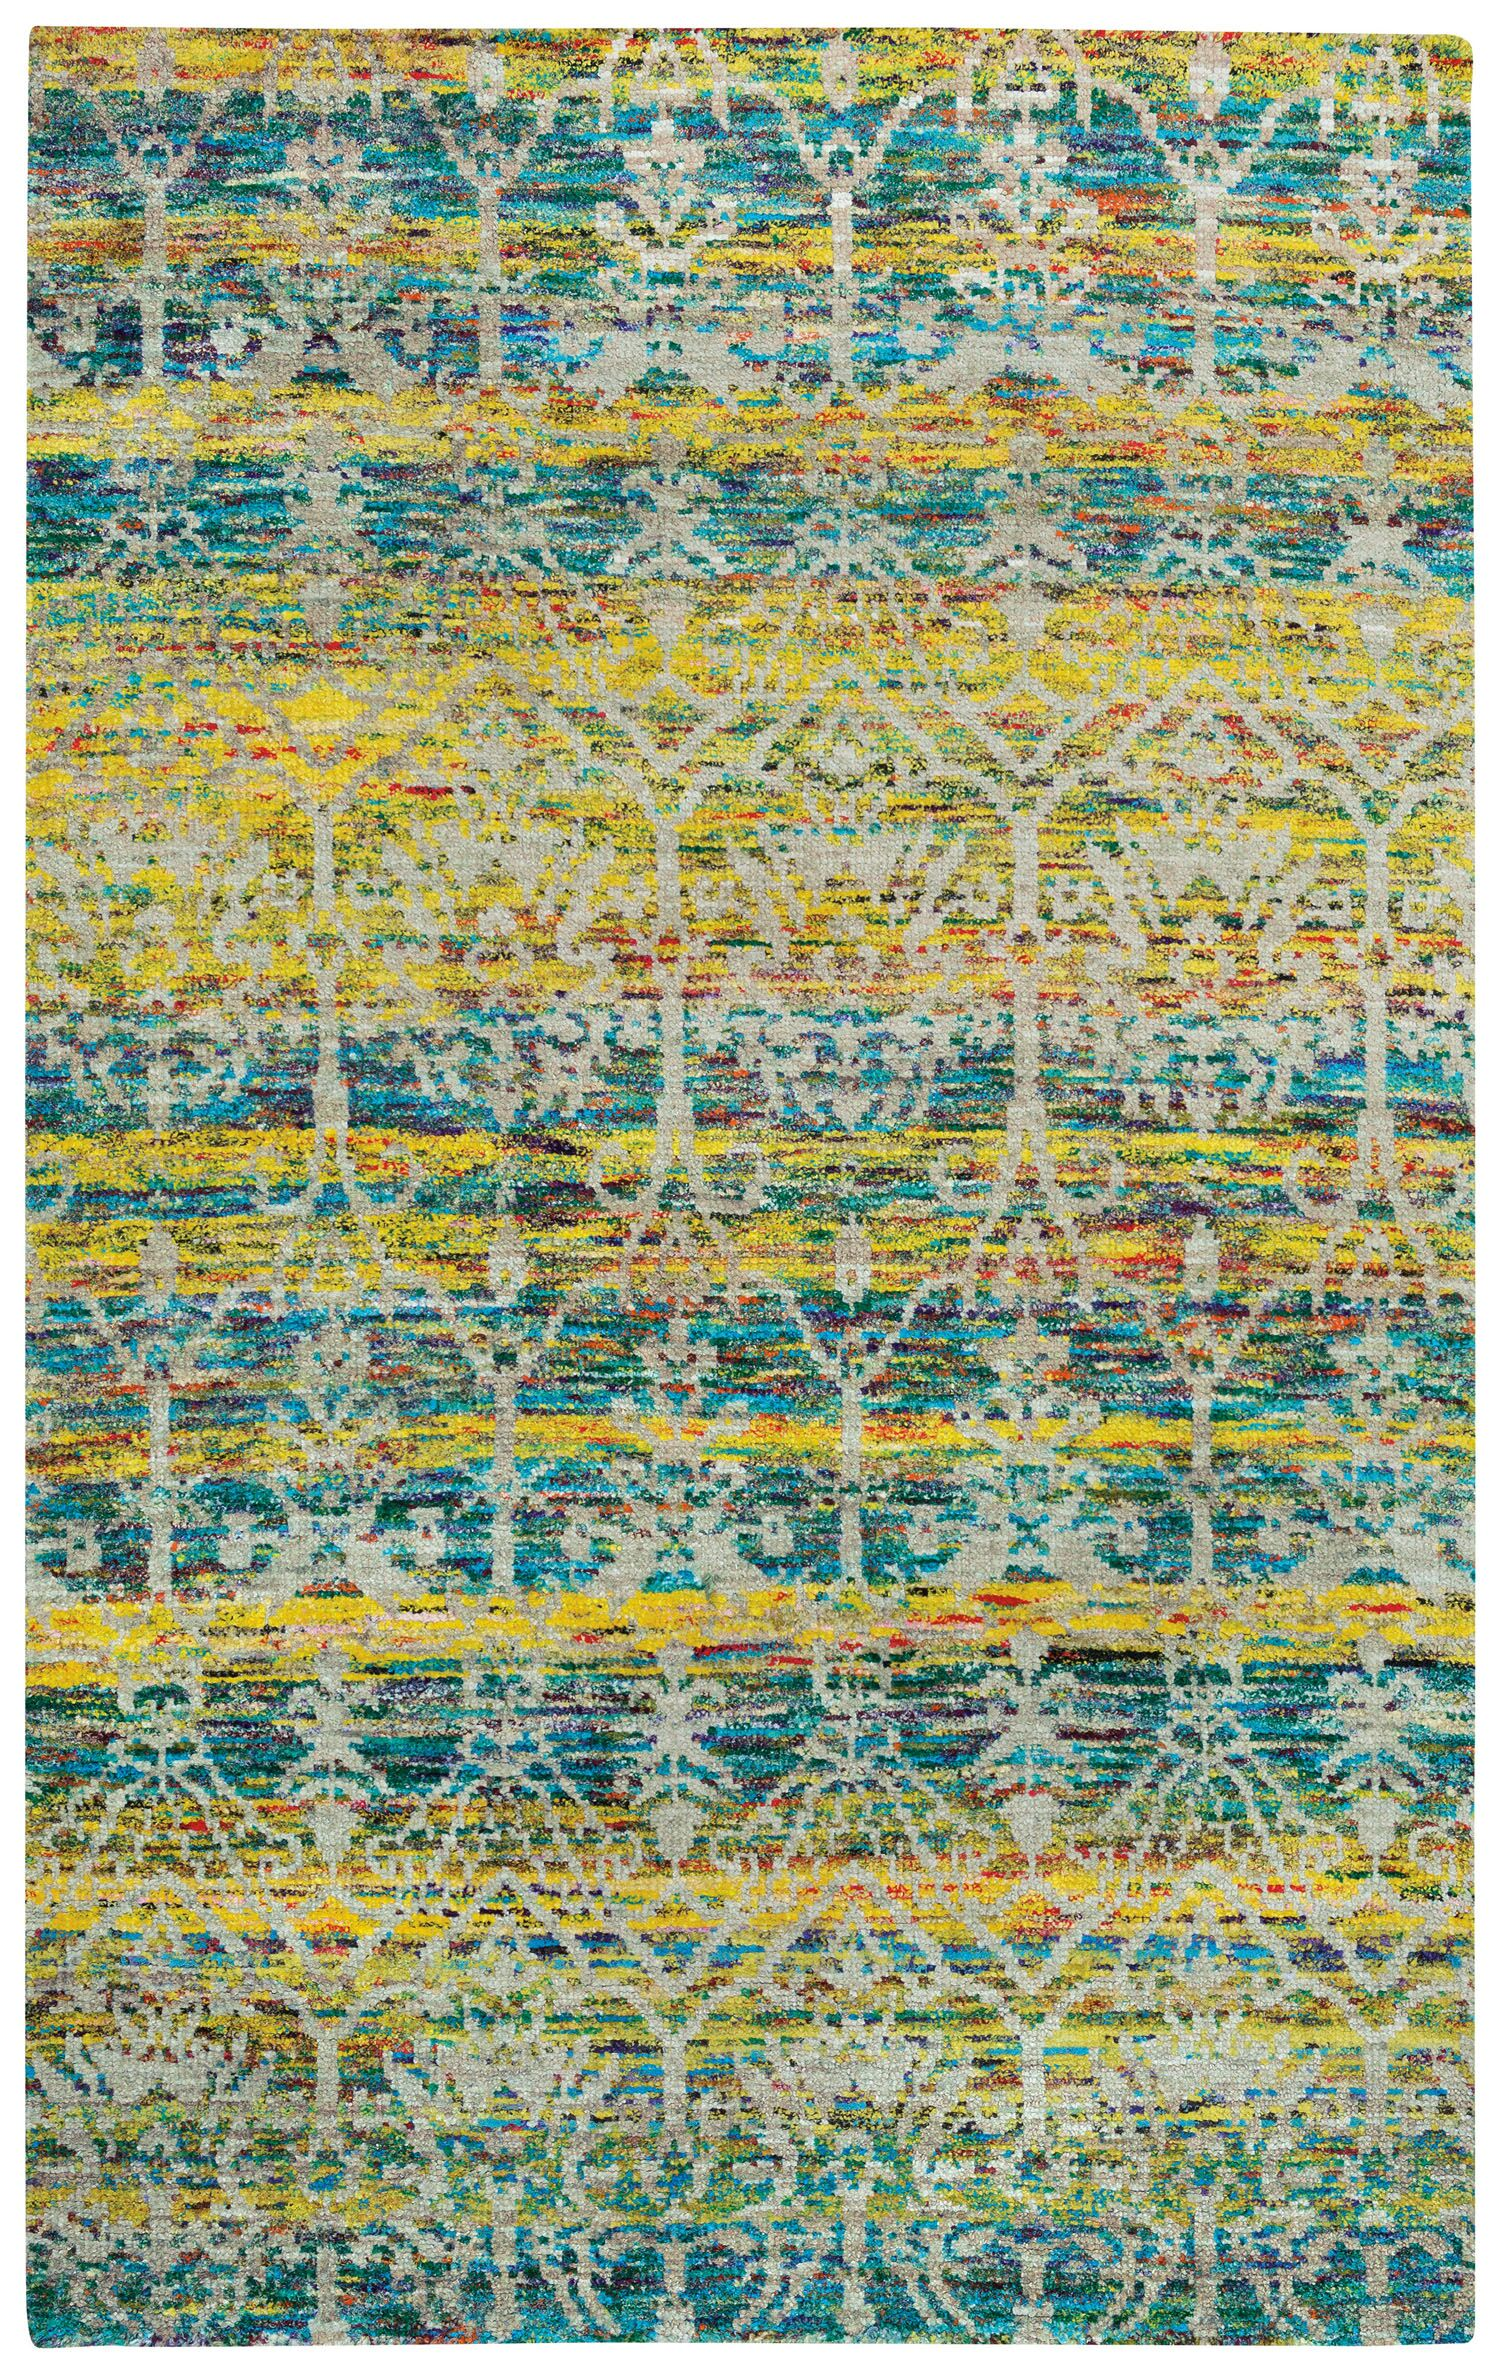 Round About Acrobat Hand Knotted Banana Area Rug Rug Size: 8' x 10'